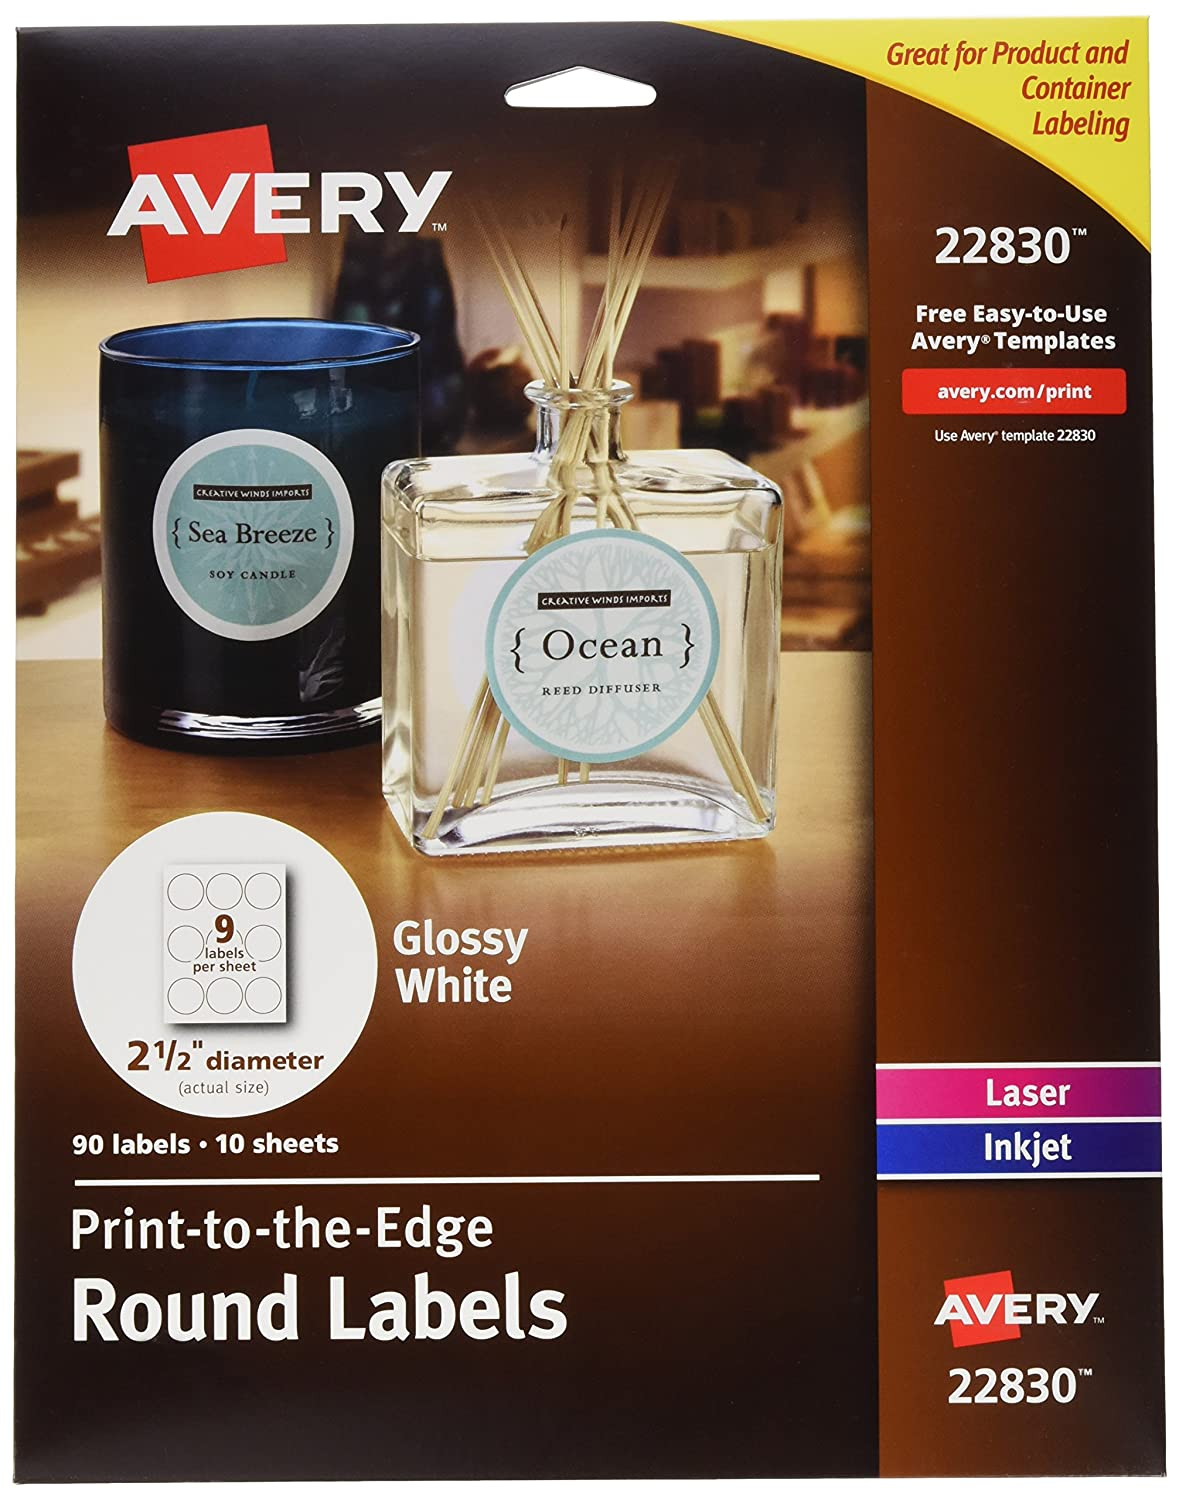 "Avery Round Labels for Laser & Inkjet Printers, 2.5"", 450 Glossy White Labels Total, 5 Packs (22830)"